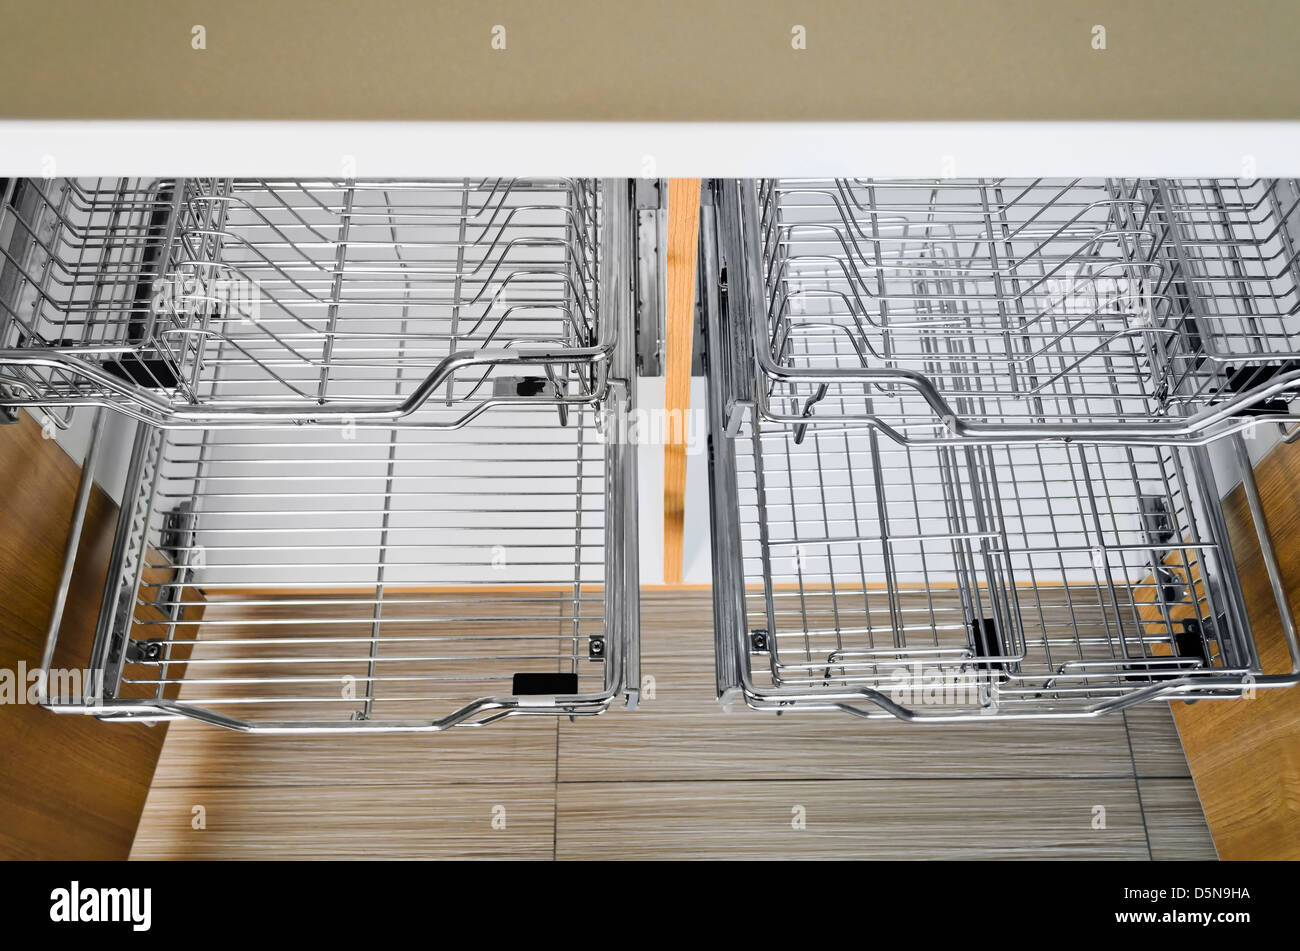 Open Kitchen Cabinet With Two Layers Of Stainless Dish Rack